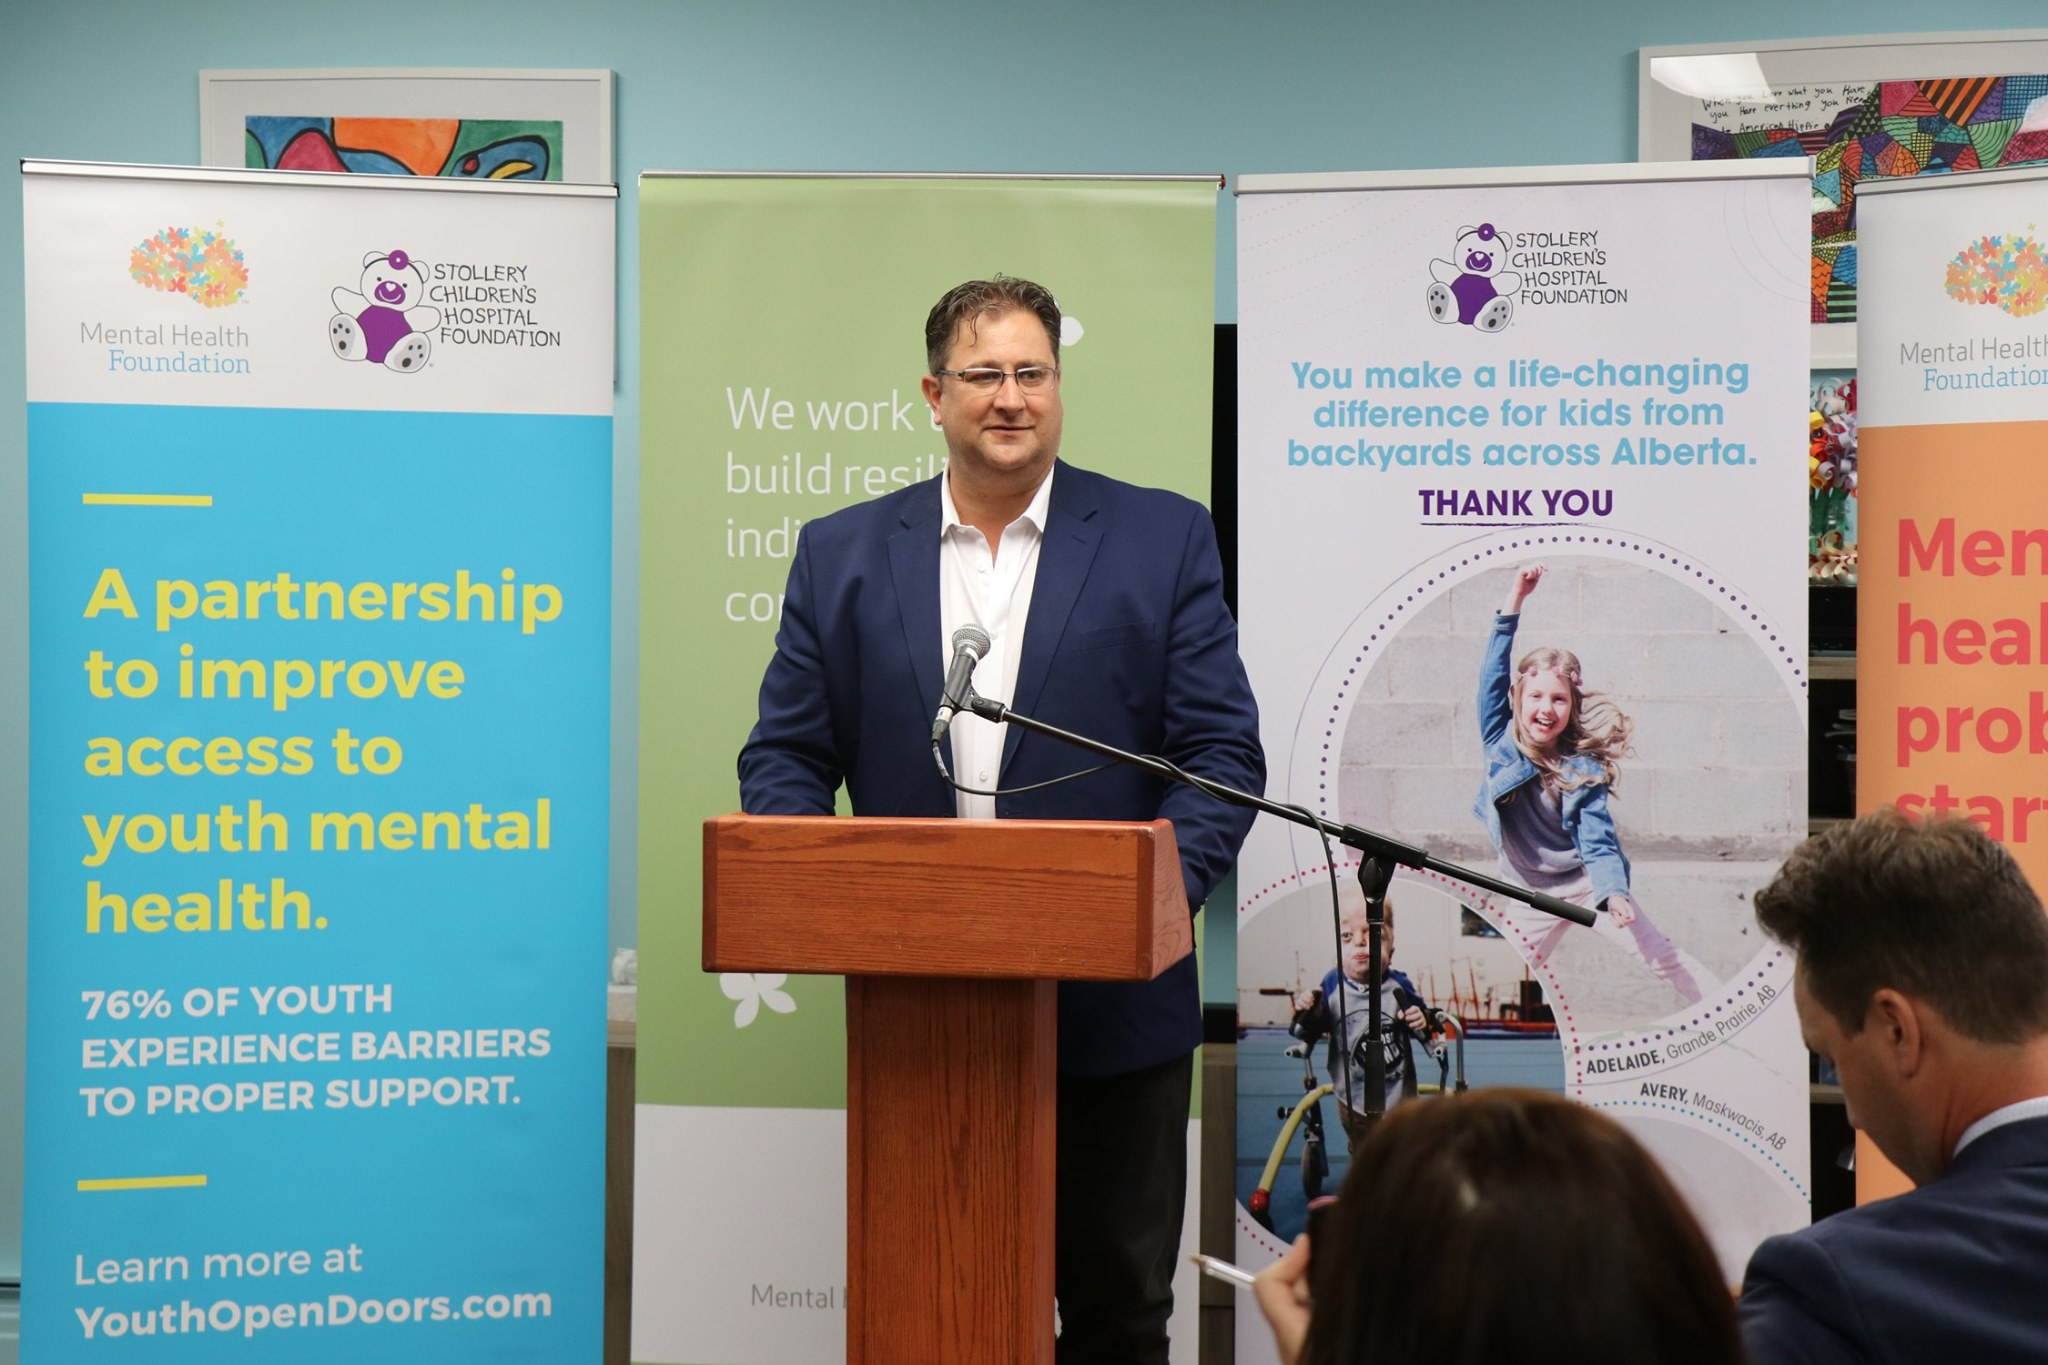 Stollery Children's Hospital Foundation announced a historic $5M gift to Mental Health Foundation (MFH) in support of youth mental health